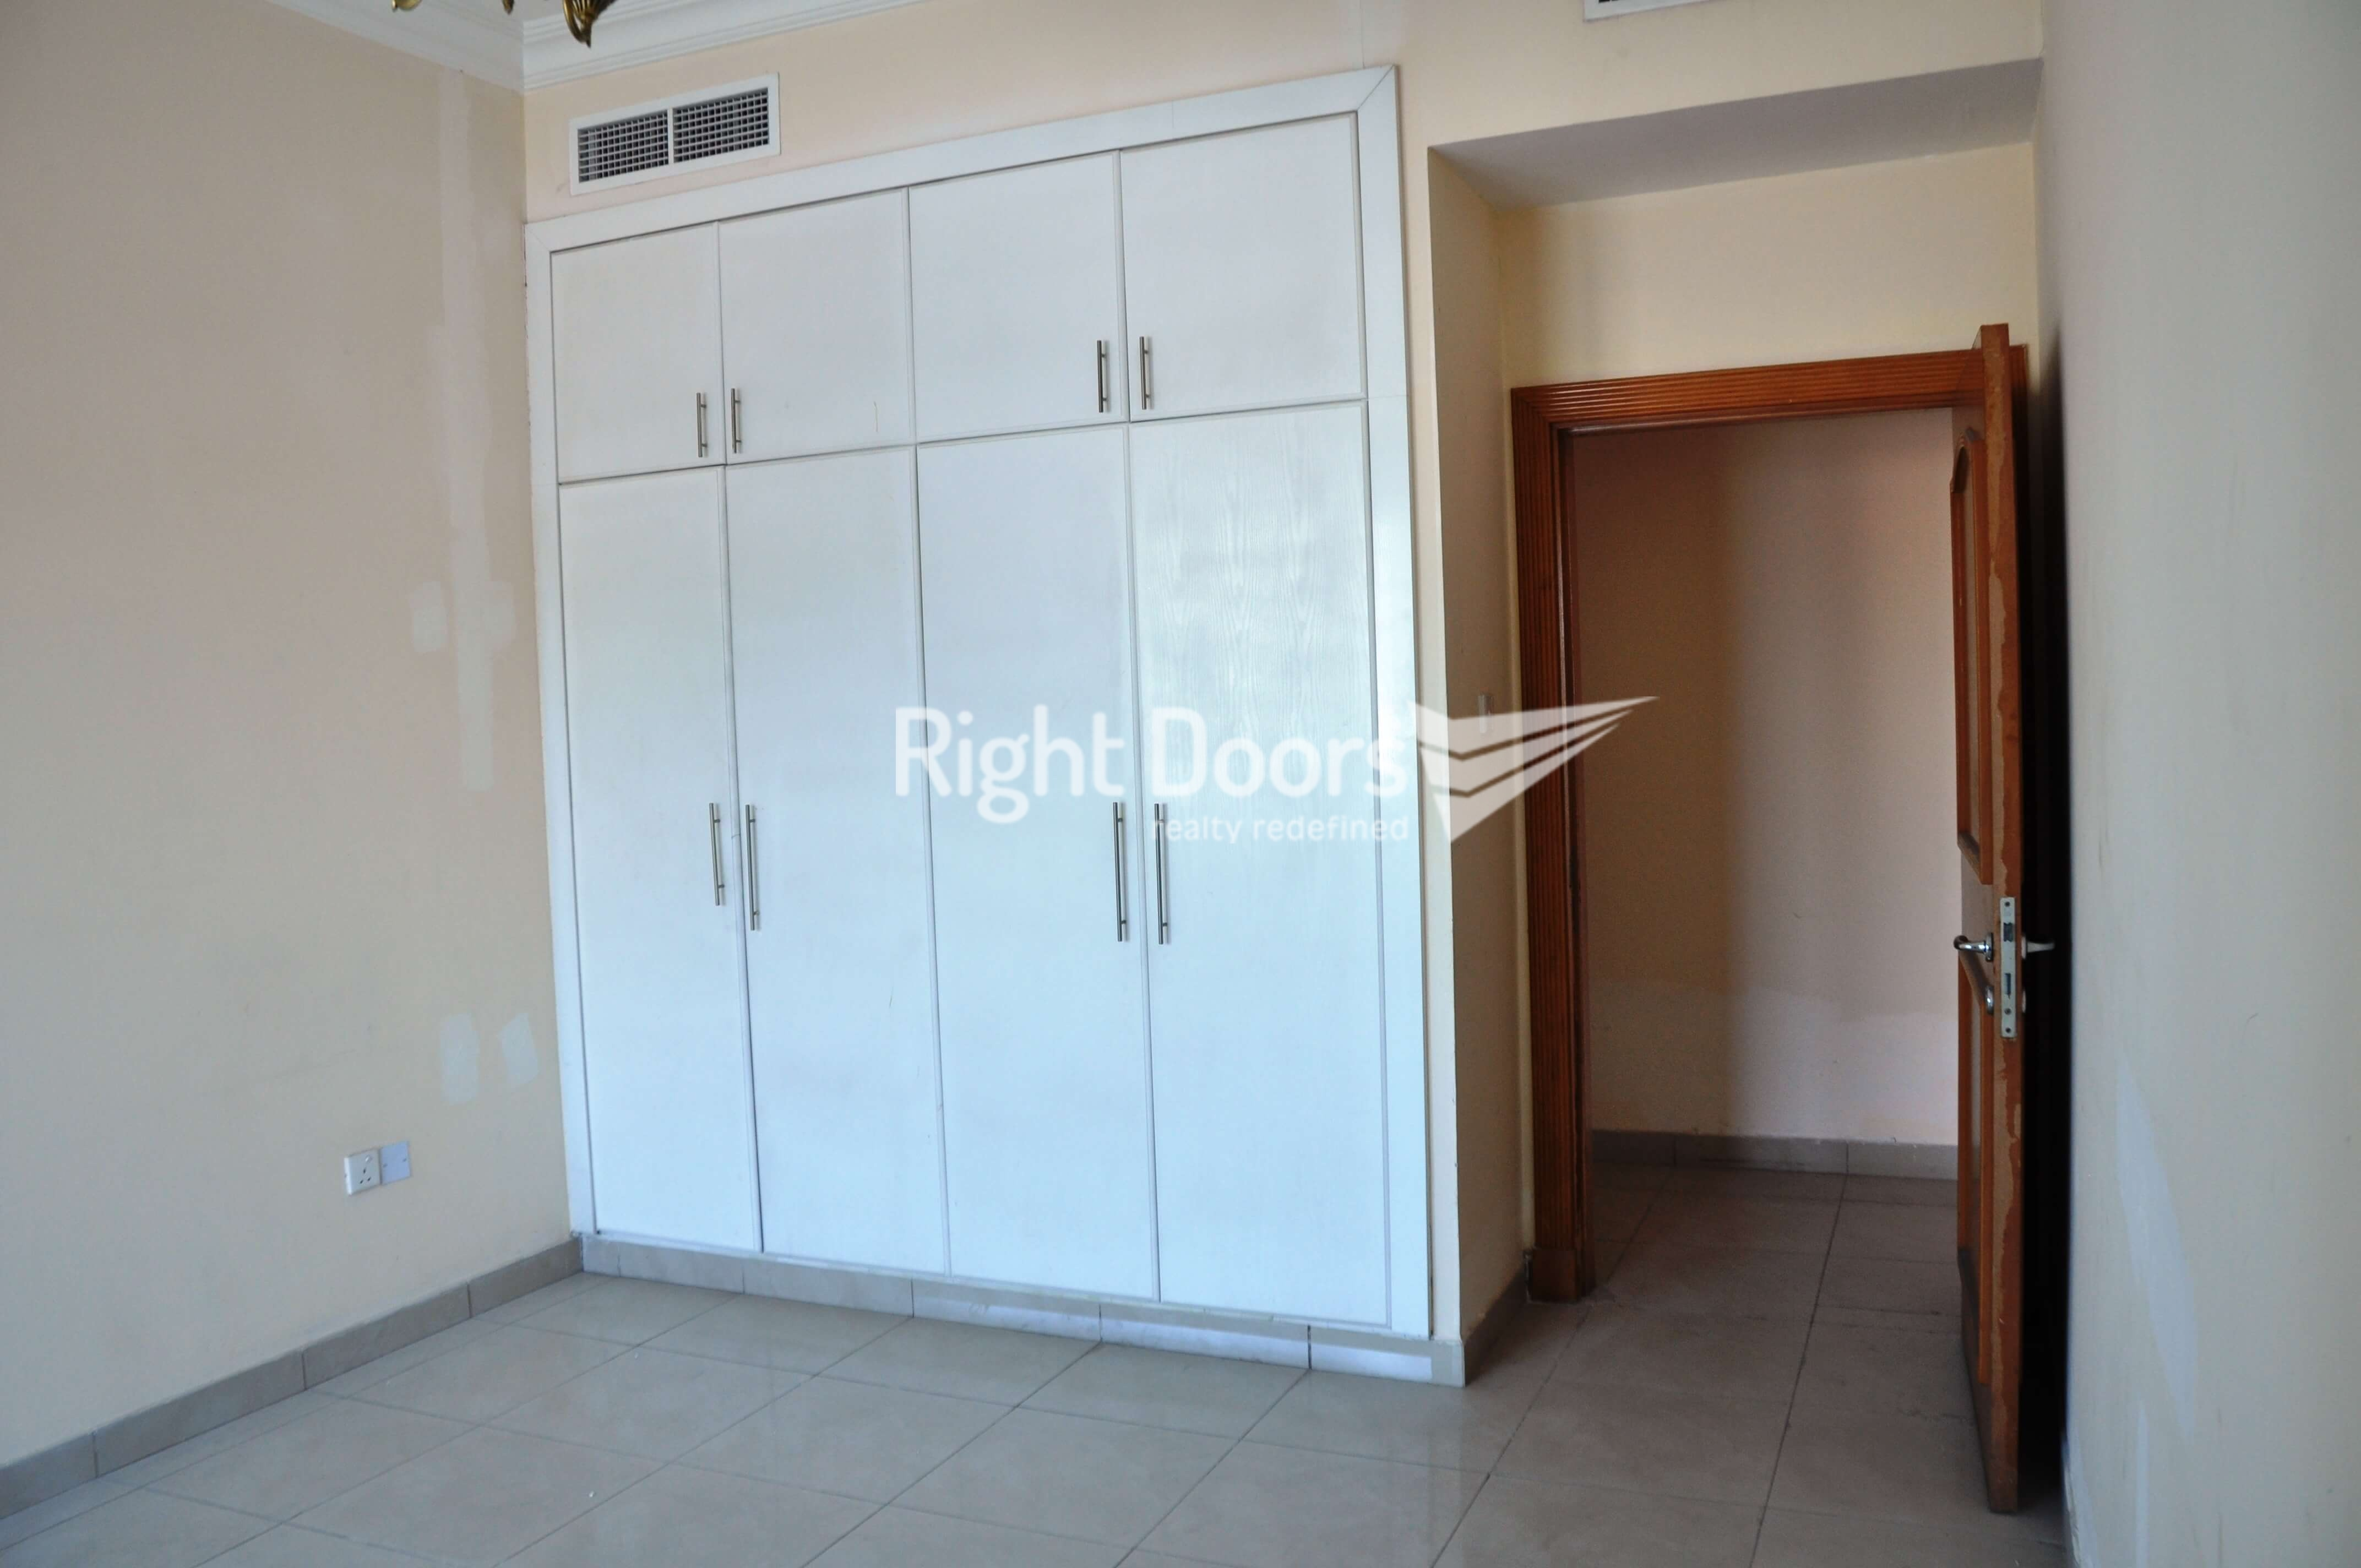 4 Bedroom With Dubai Arena View In Sheikh Zayed Road